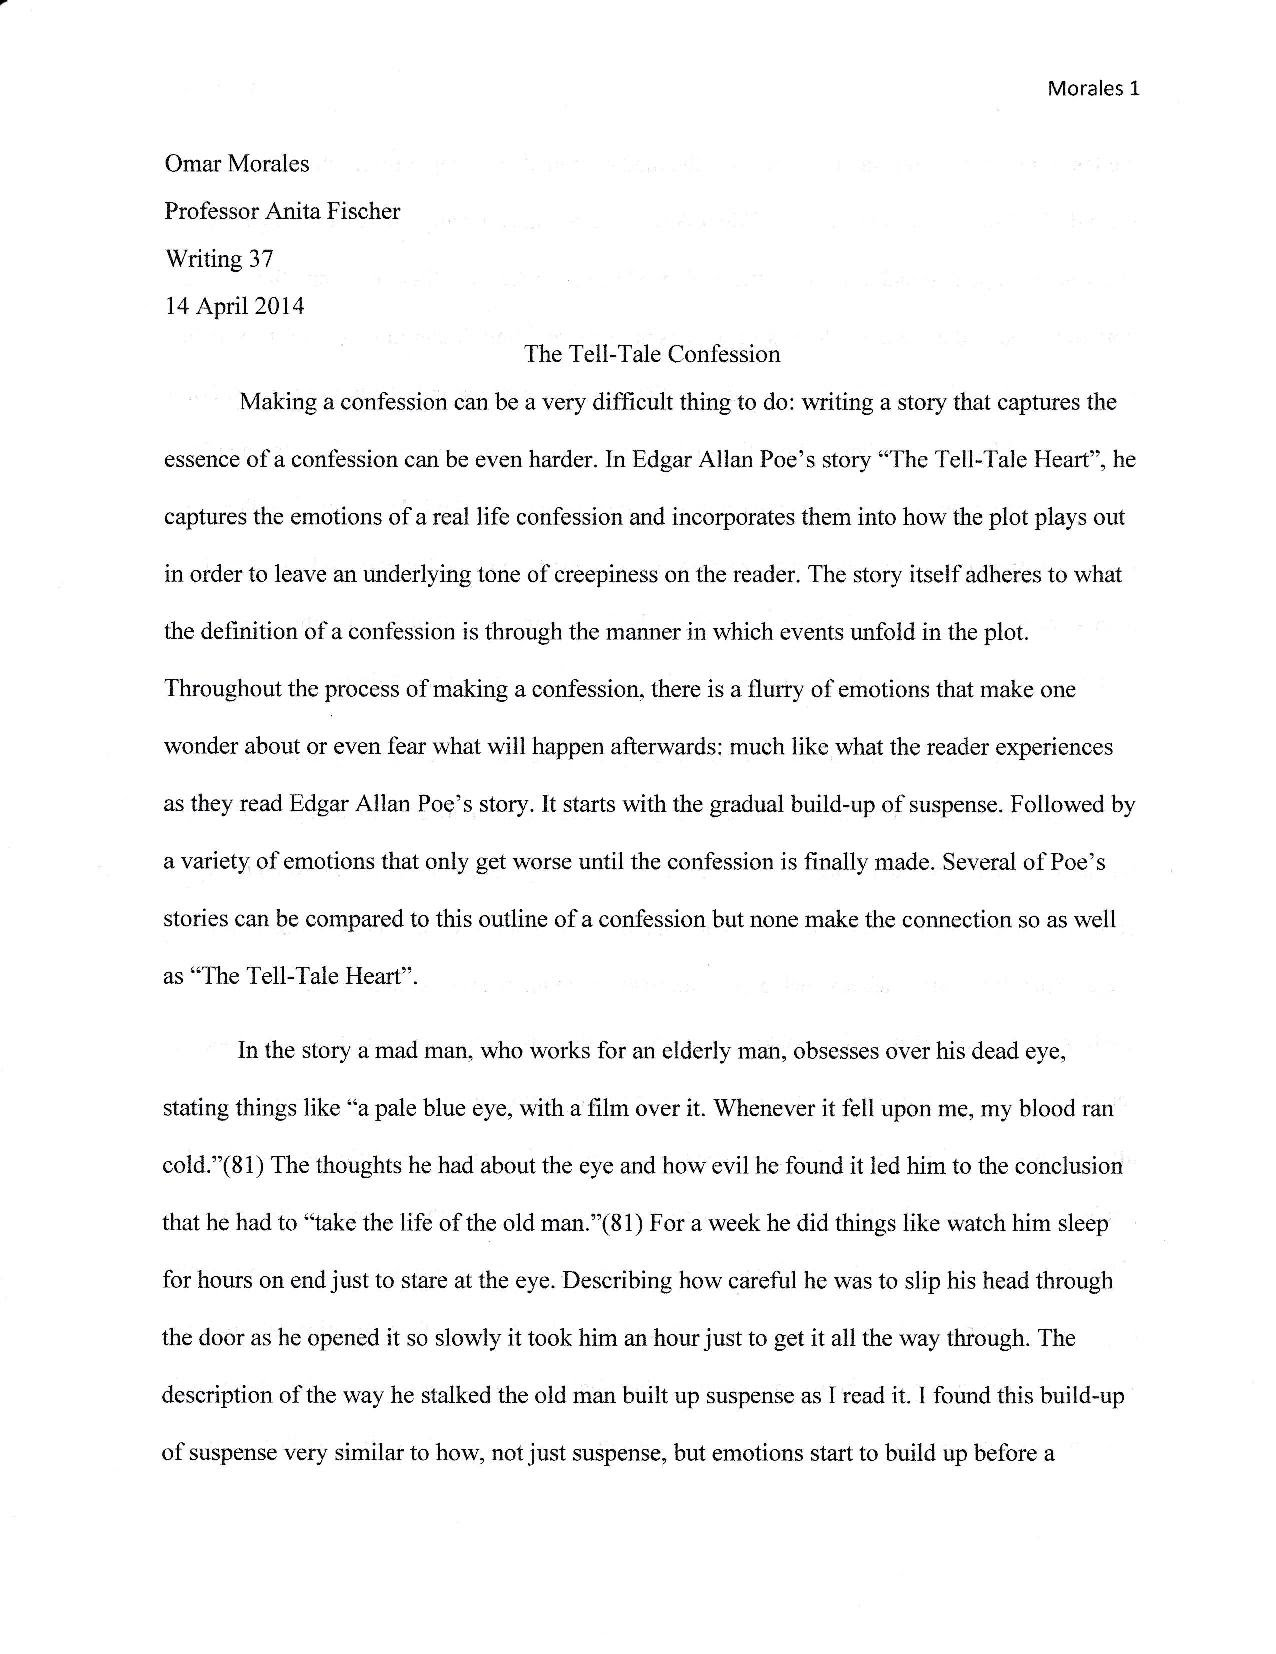 speech critique essay